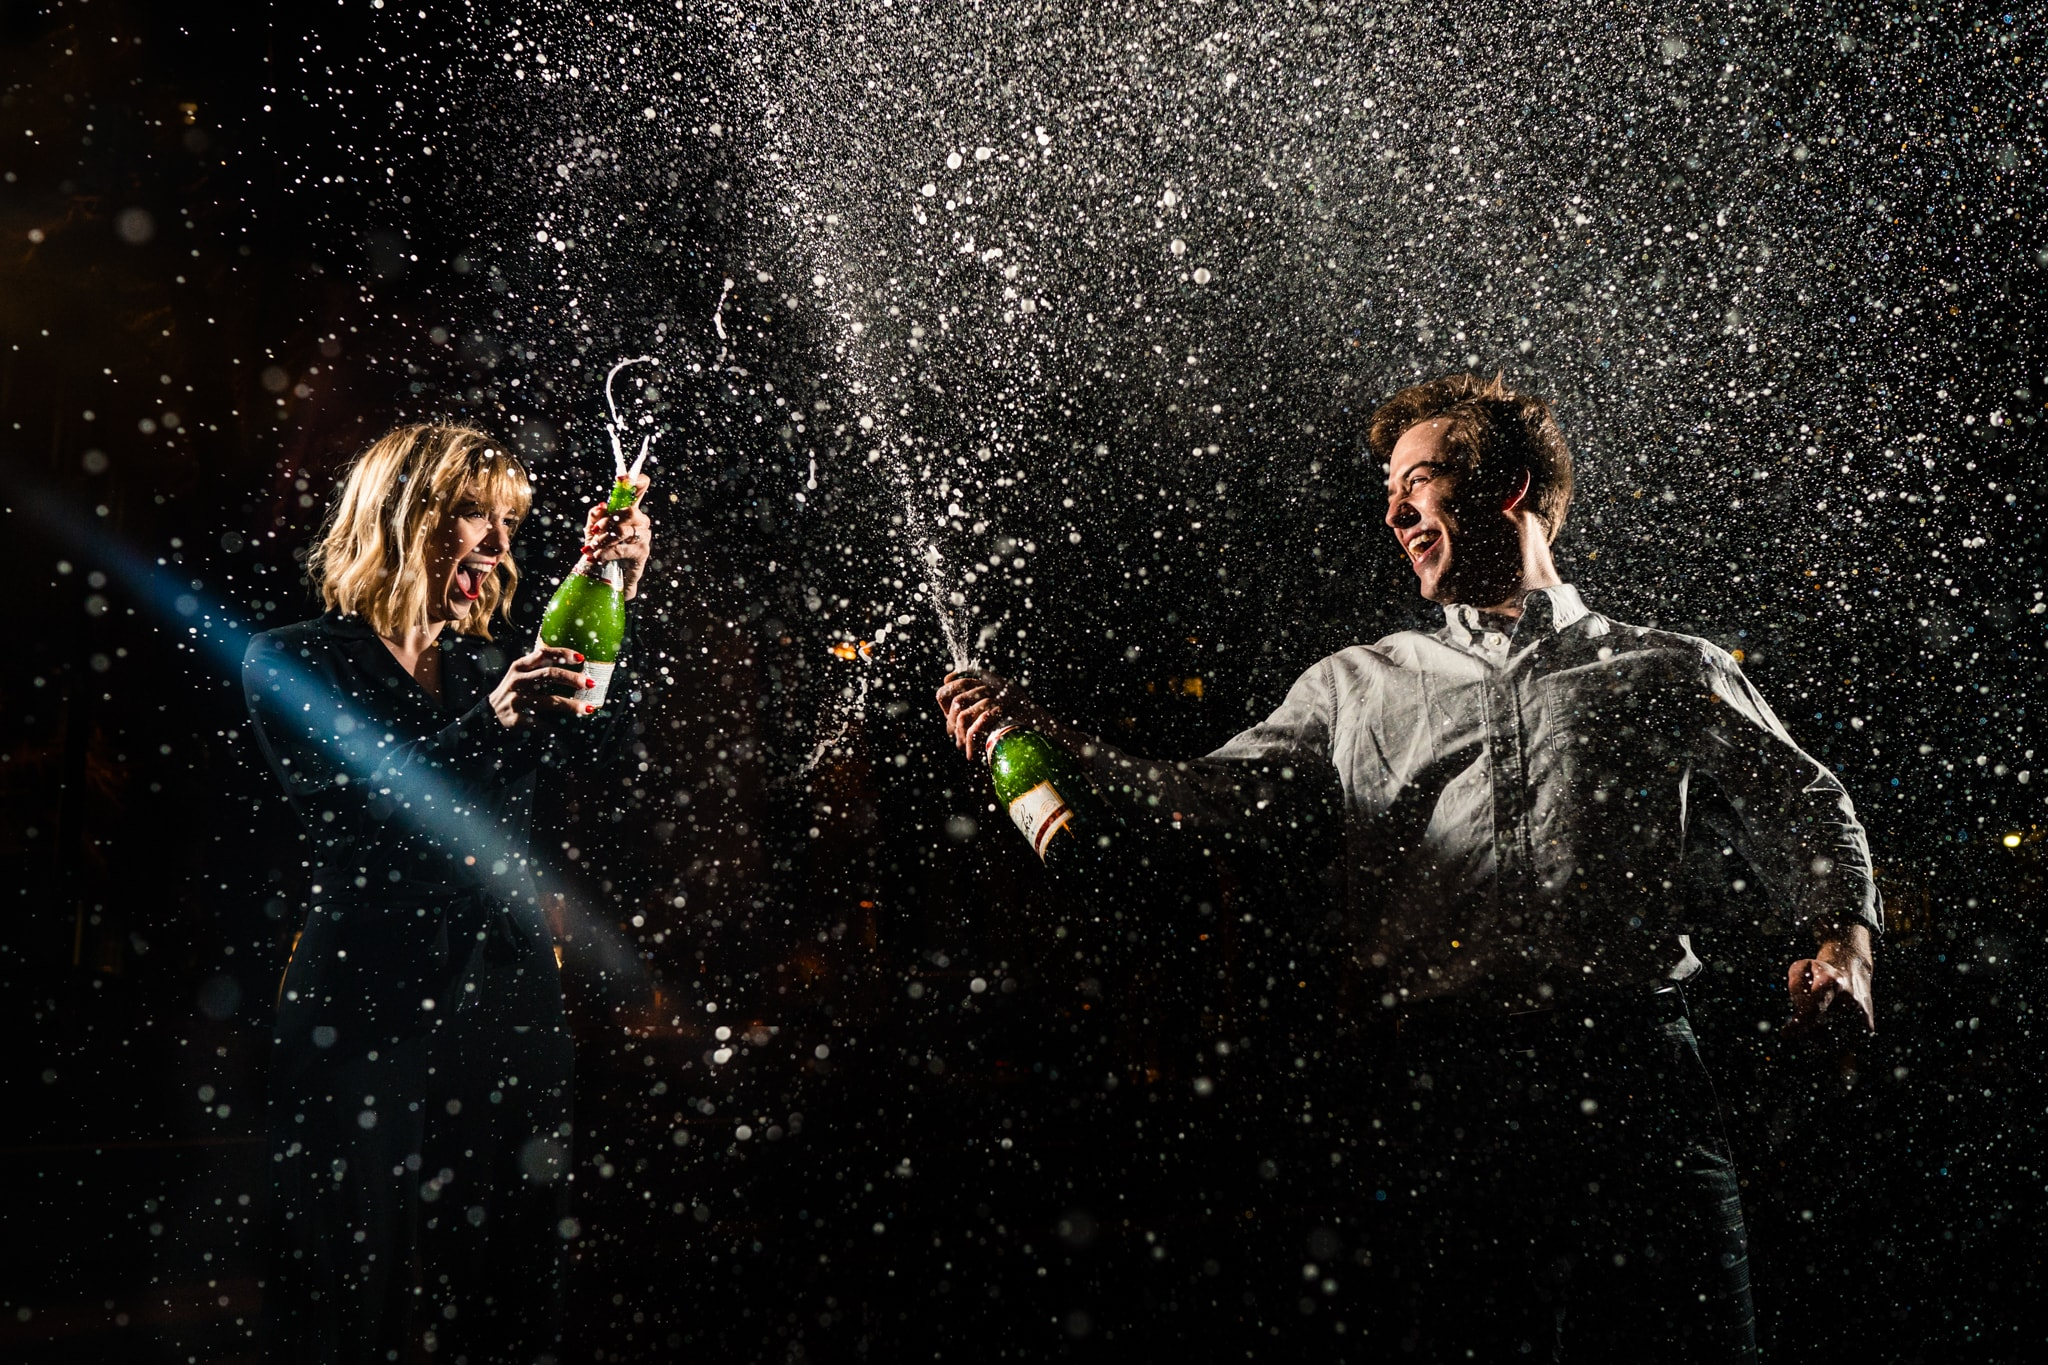 Couple spraying Champagne